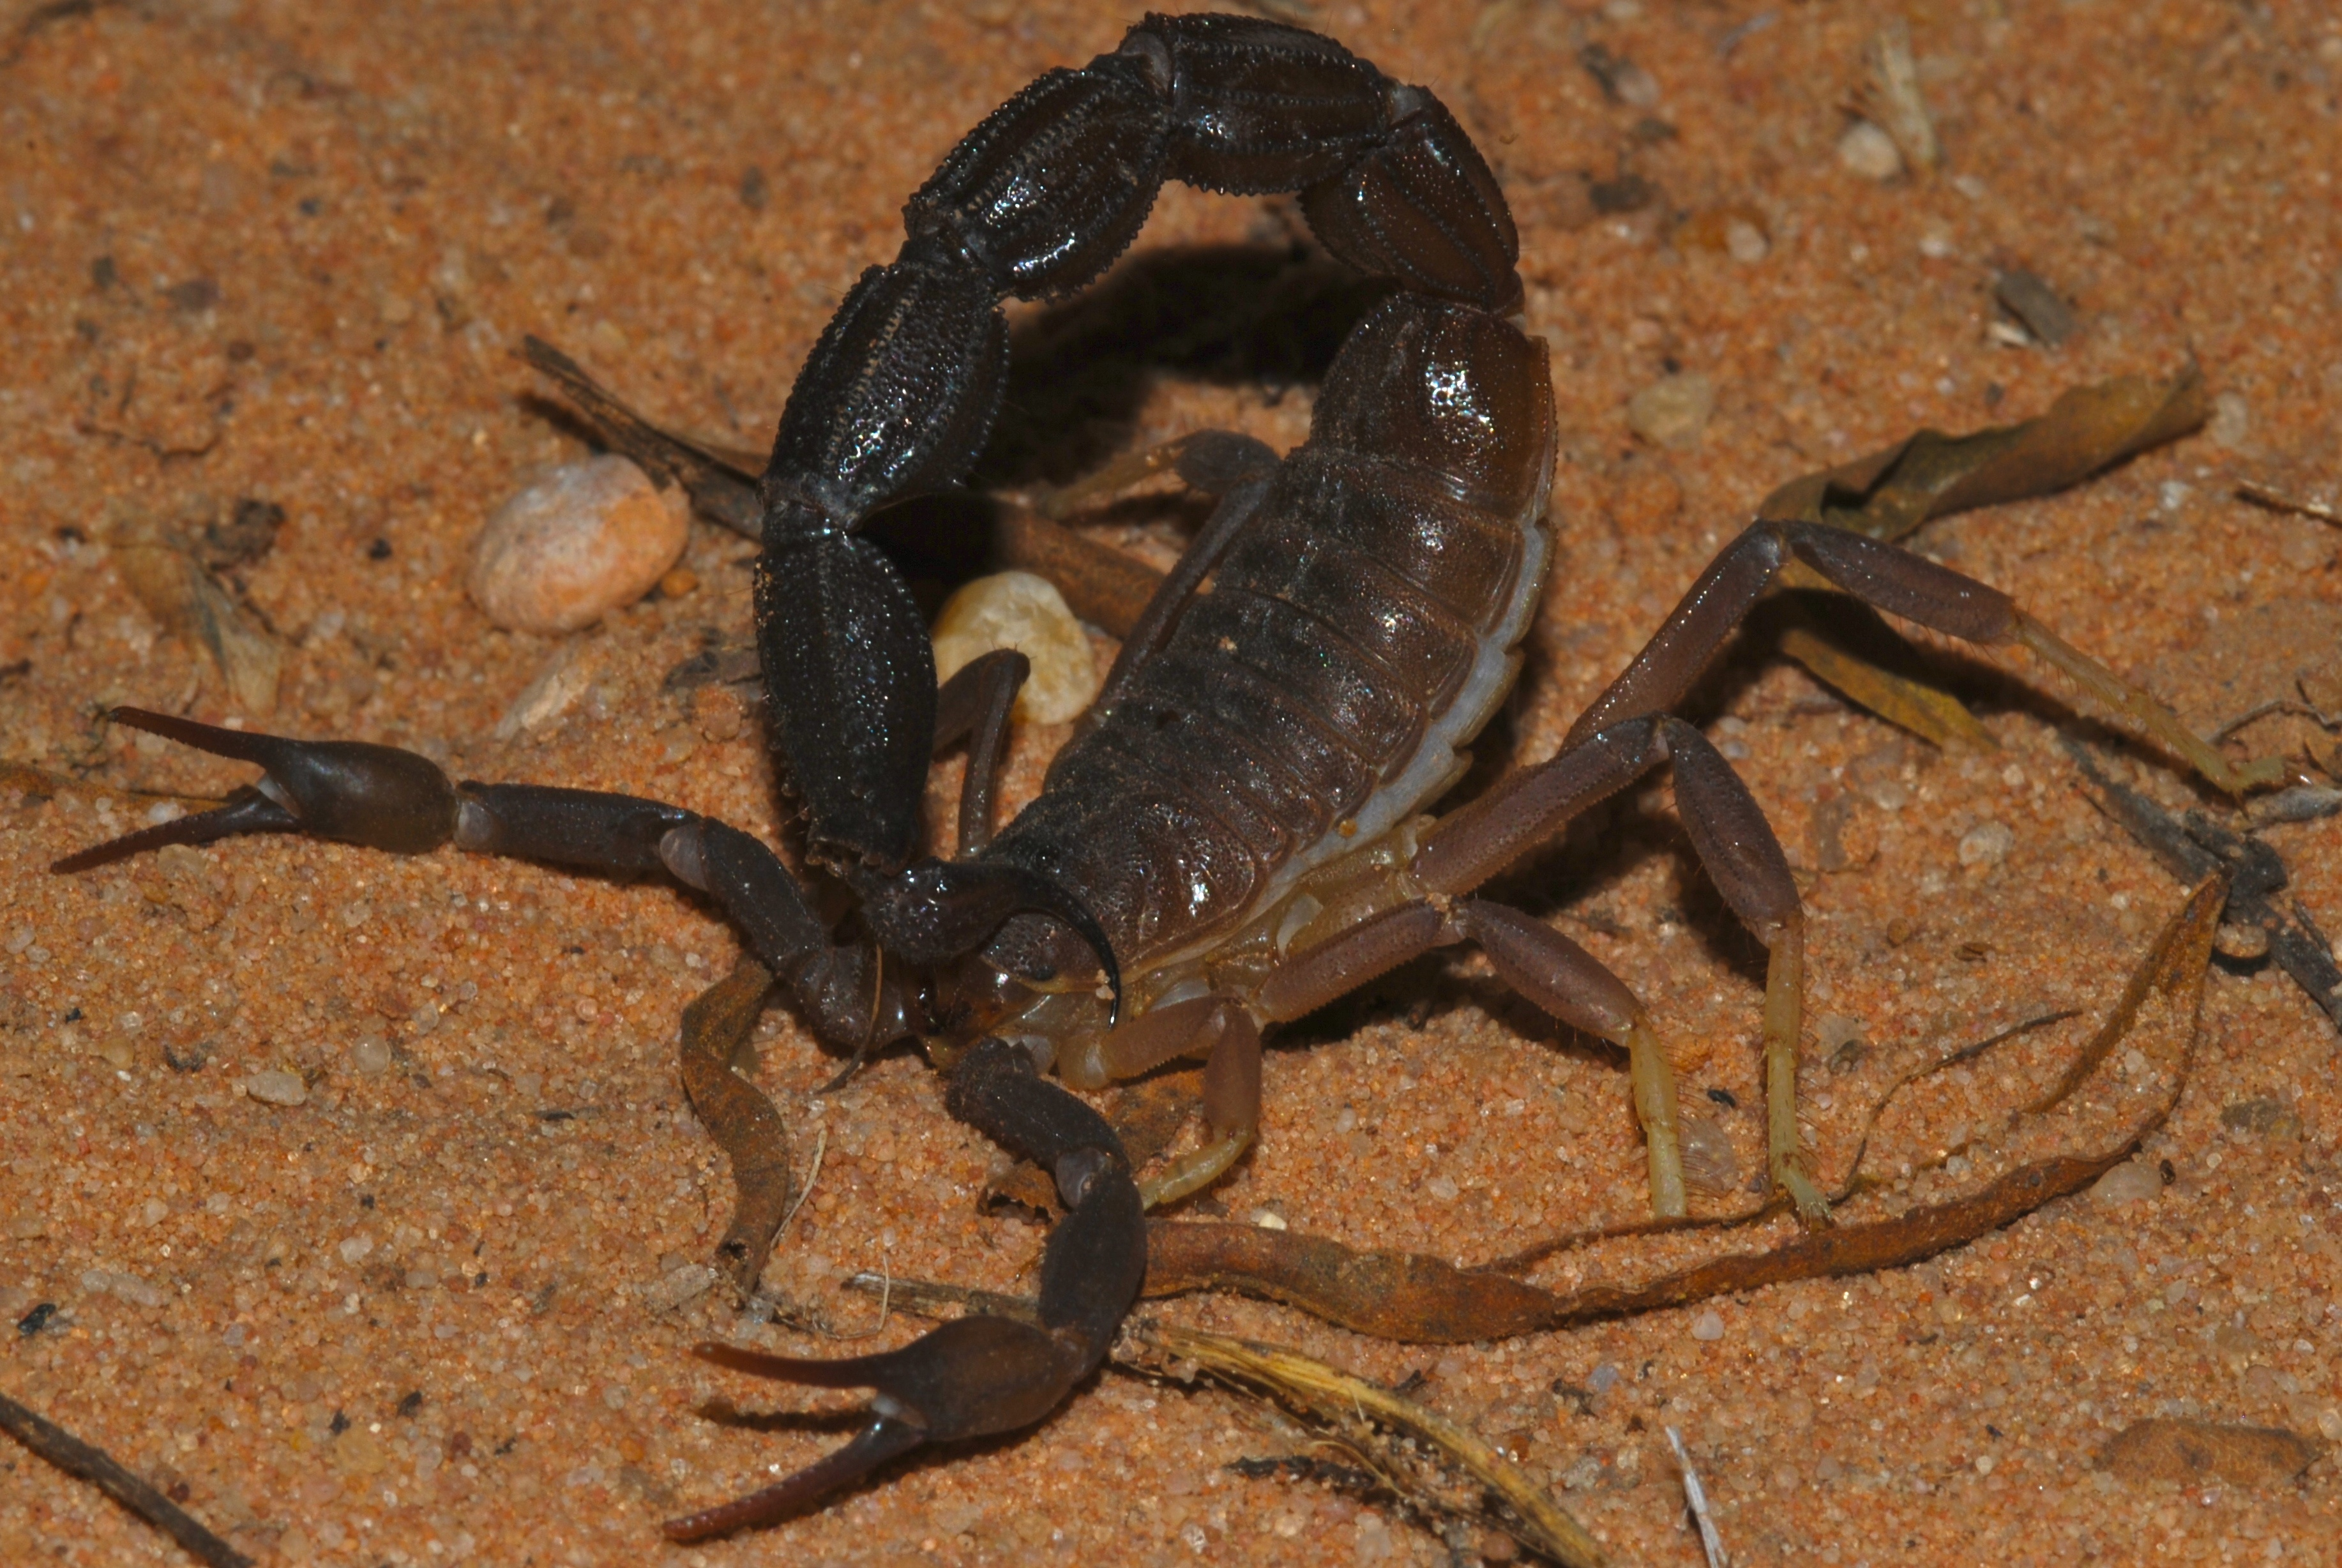 Image of Rough thicktail scorpion